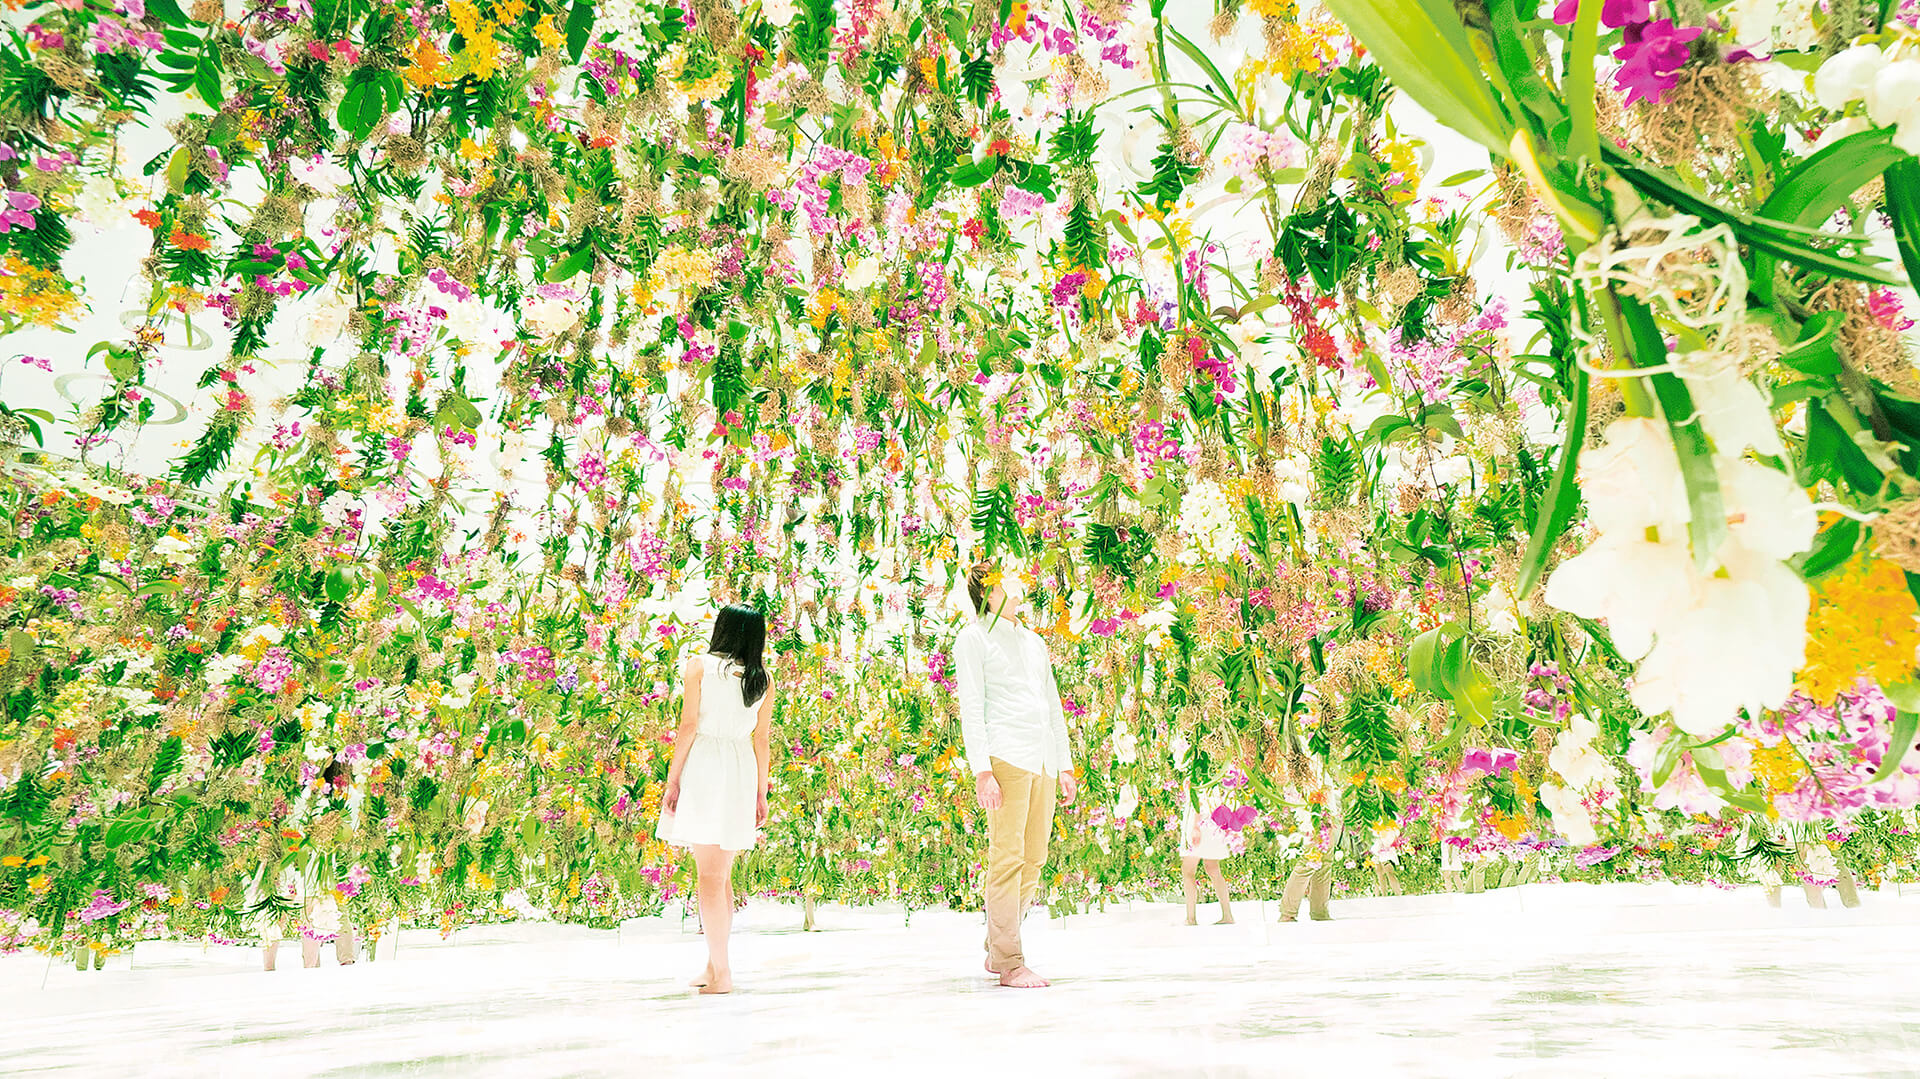 Floating Flower Garden, teamLab, 2015  | Cross Border Conversations | Space Popular X teamLab | STIR X LOCO Design